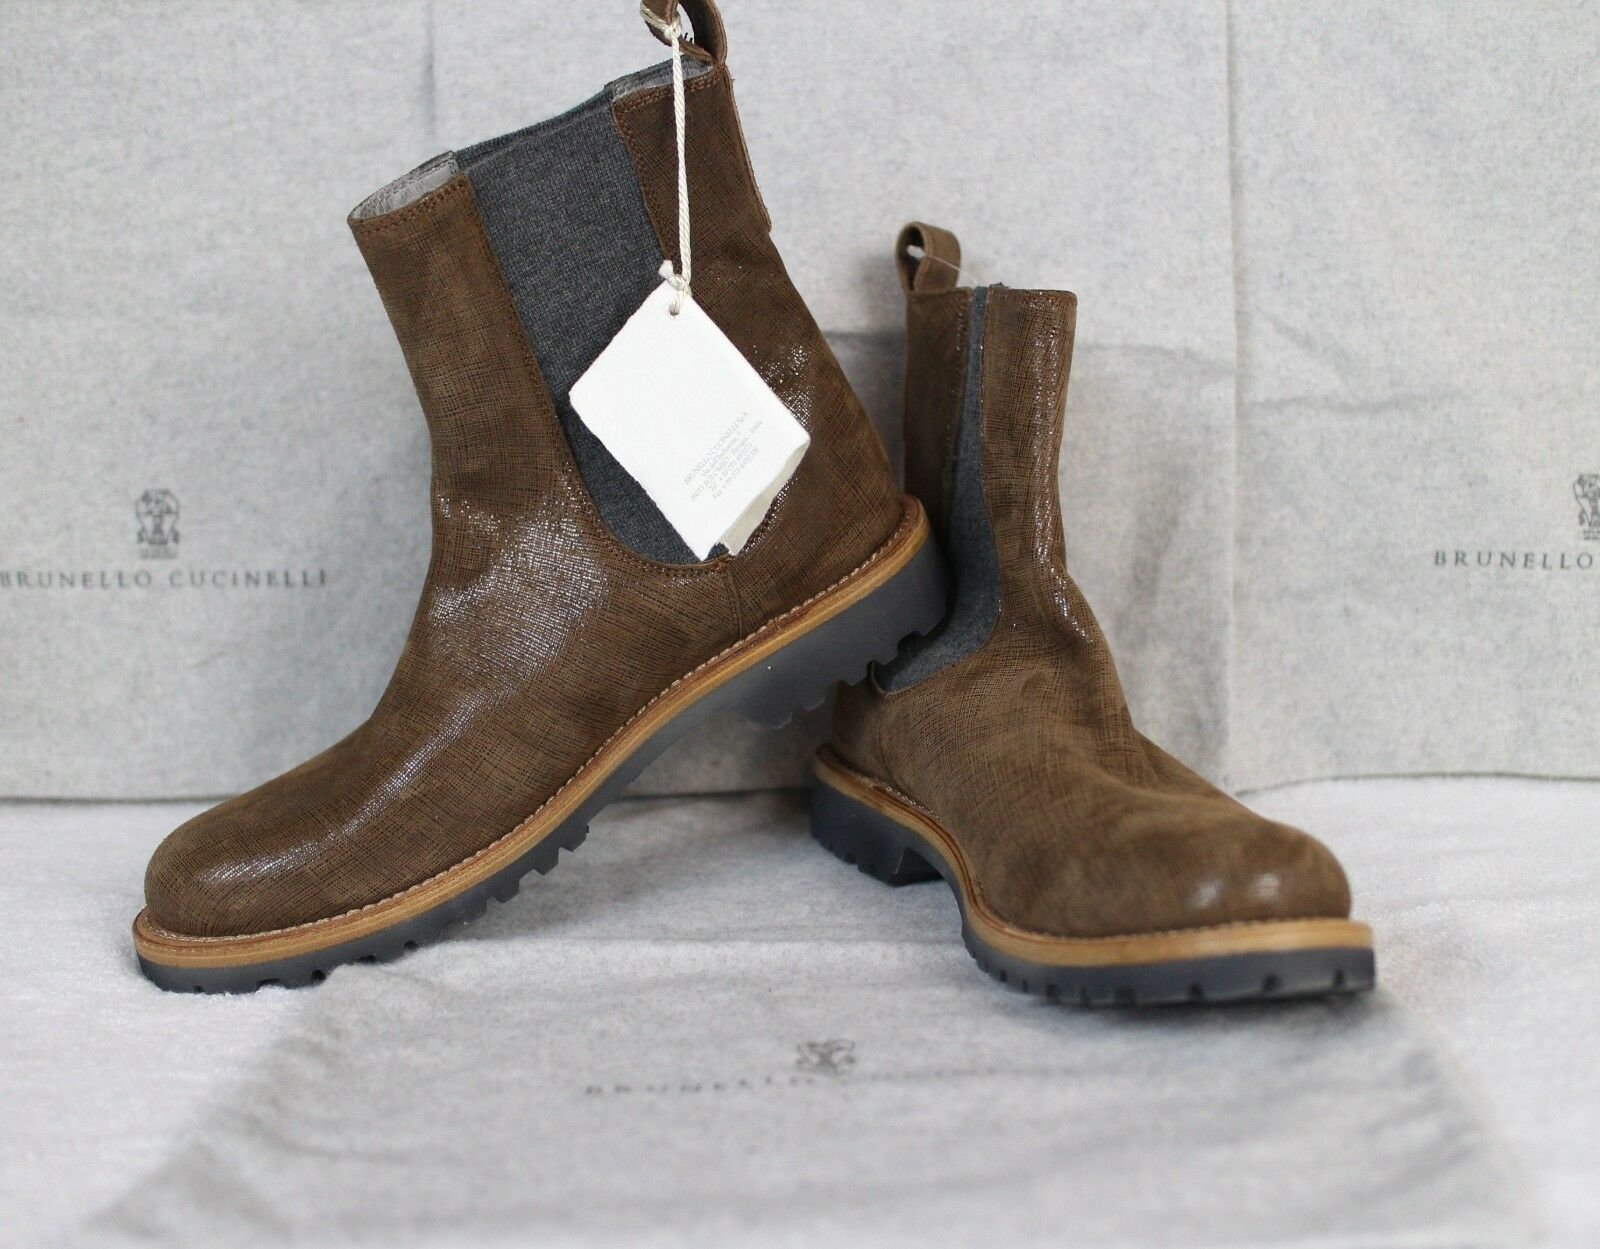 New Brunello Cucinelli Suede And Cashmere Chelsea Boots Beautiful Shoes!! 10.5